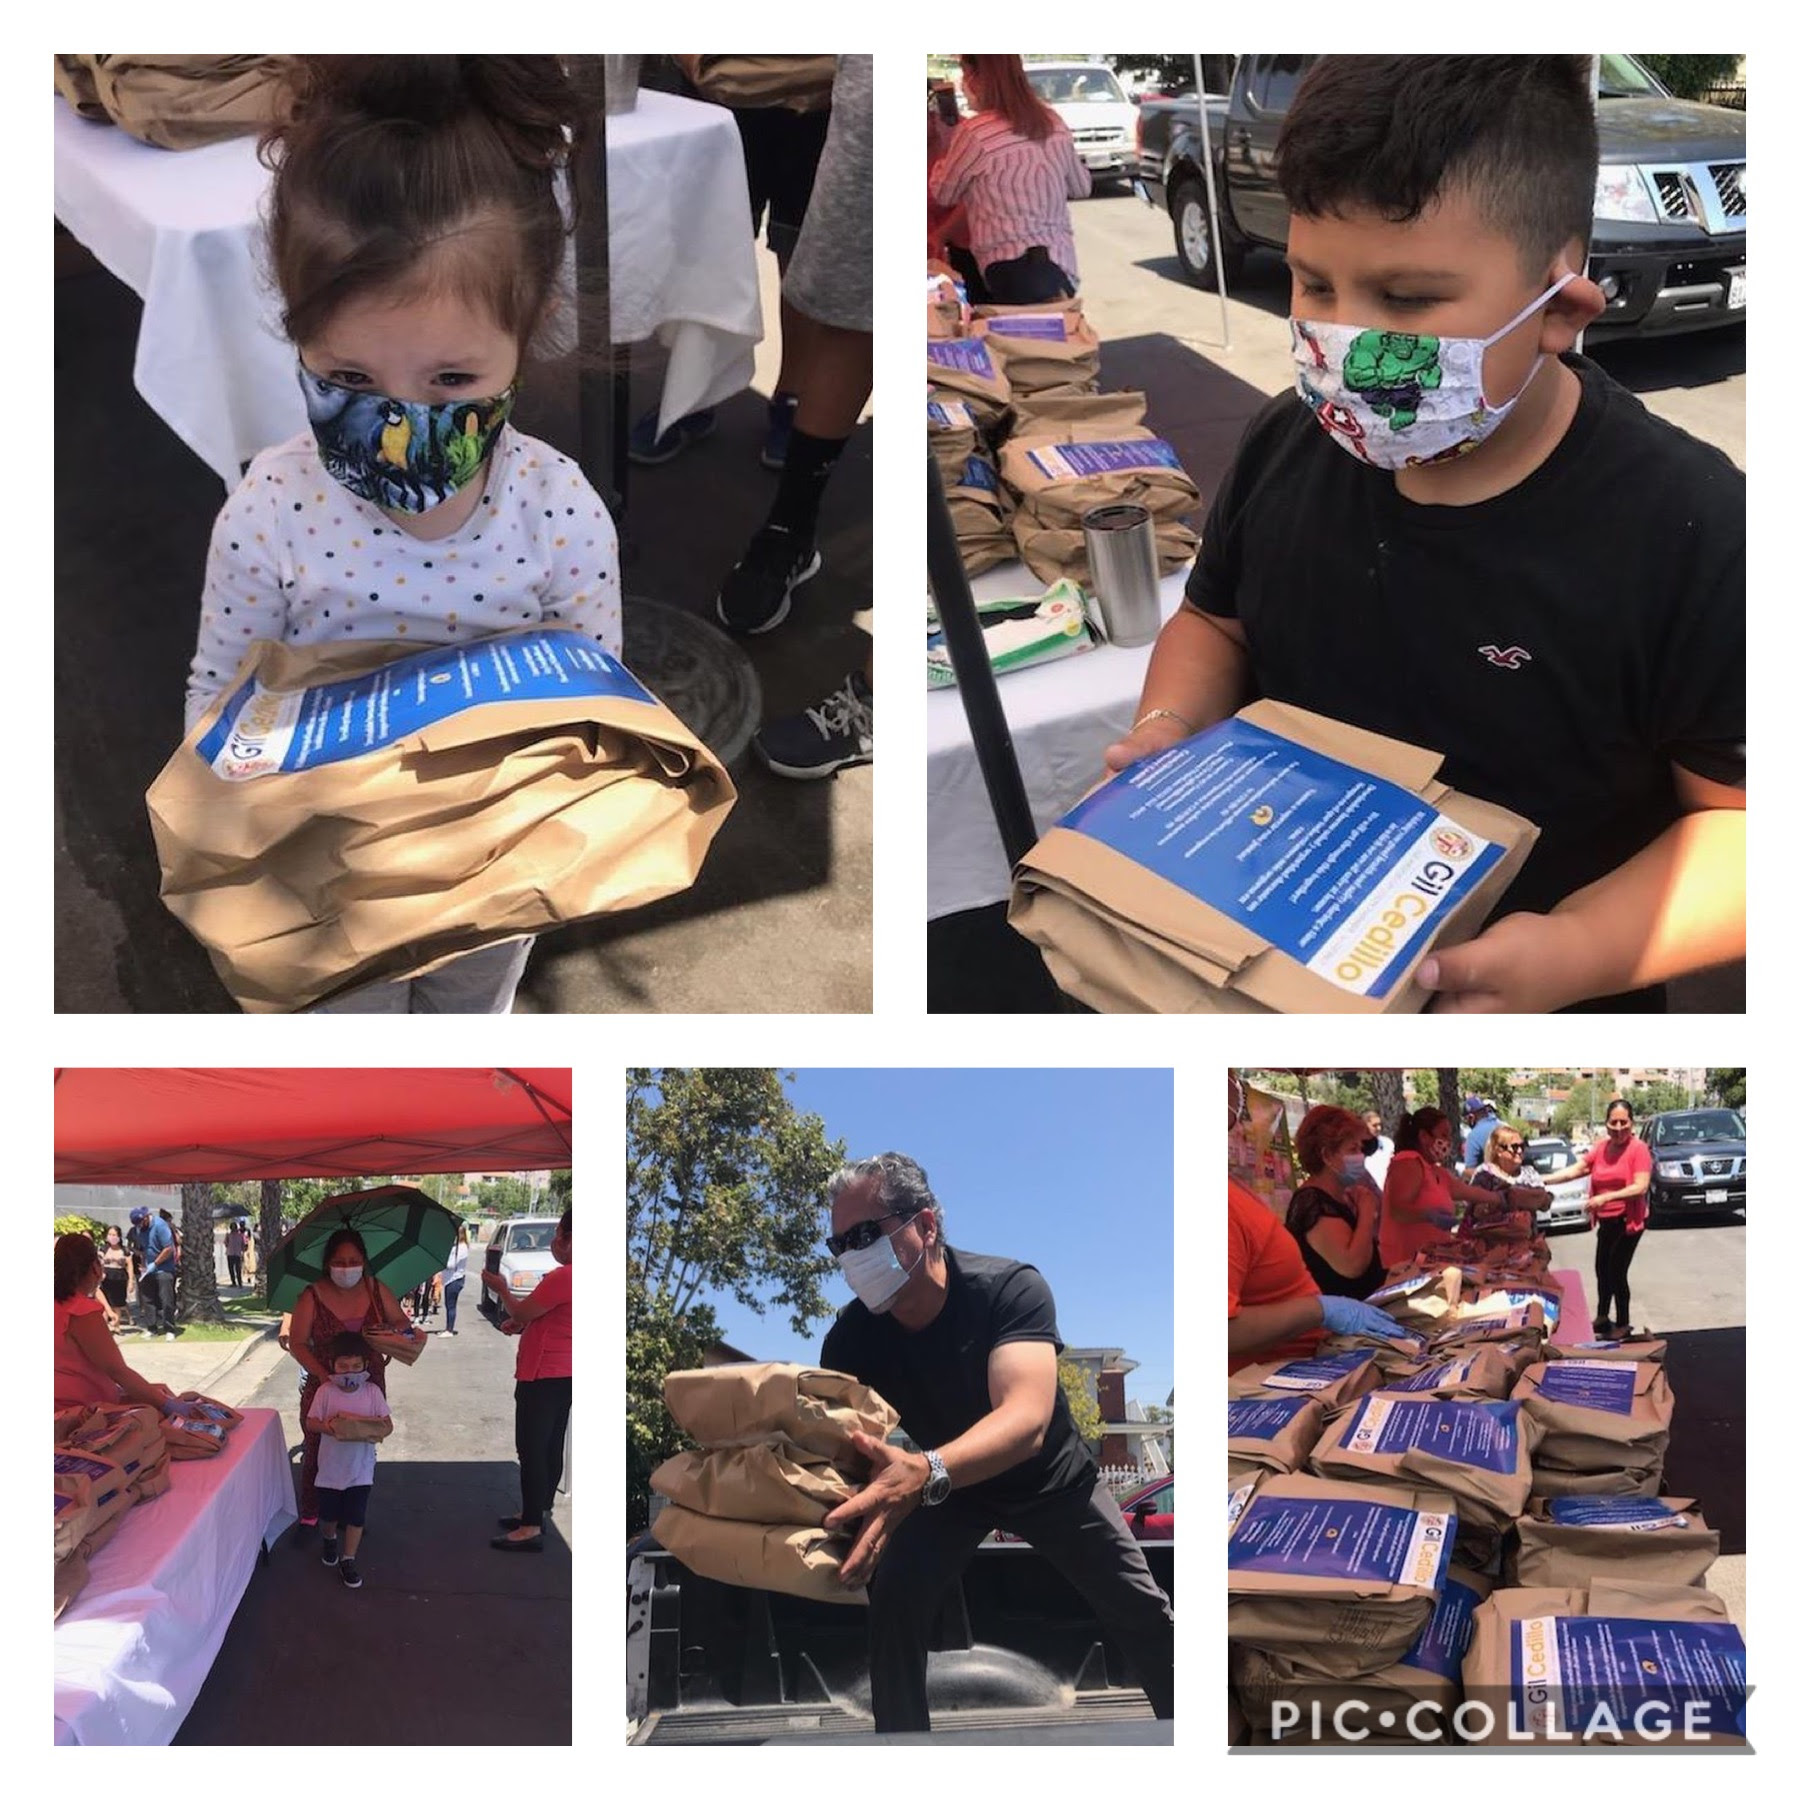 Arroyo Arts Collective, Club Cora Huichol and Rosty Restaurant hot meals to neighbors in Sycamore Grove 5-27-2020 COLLAGE